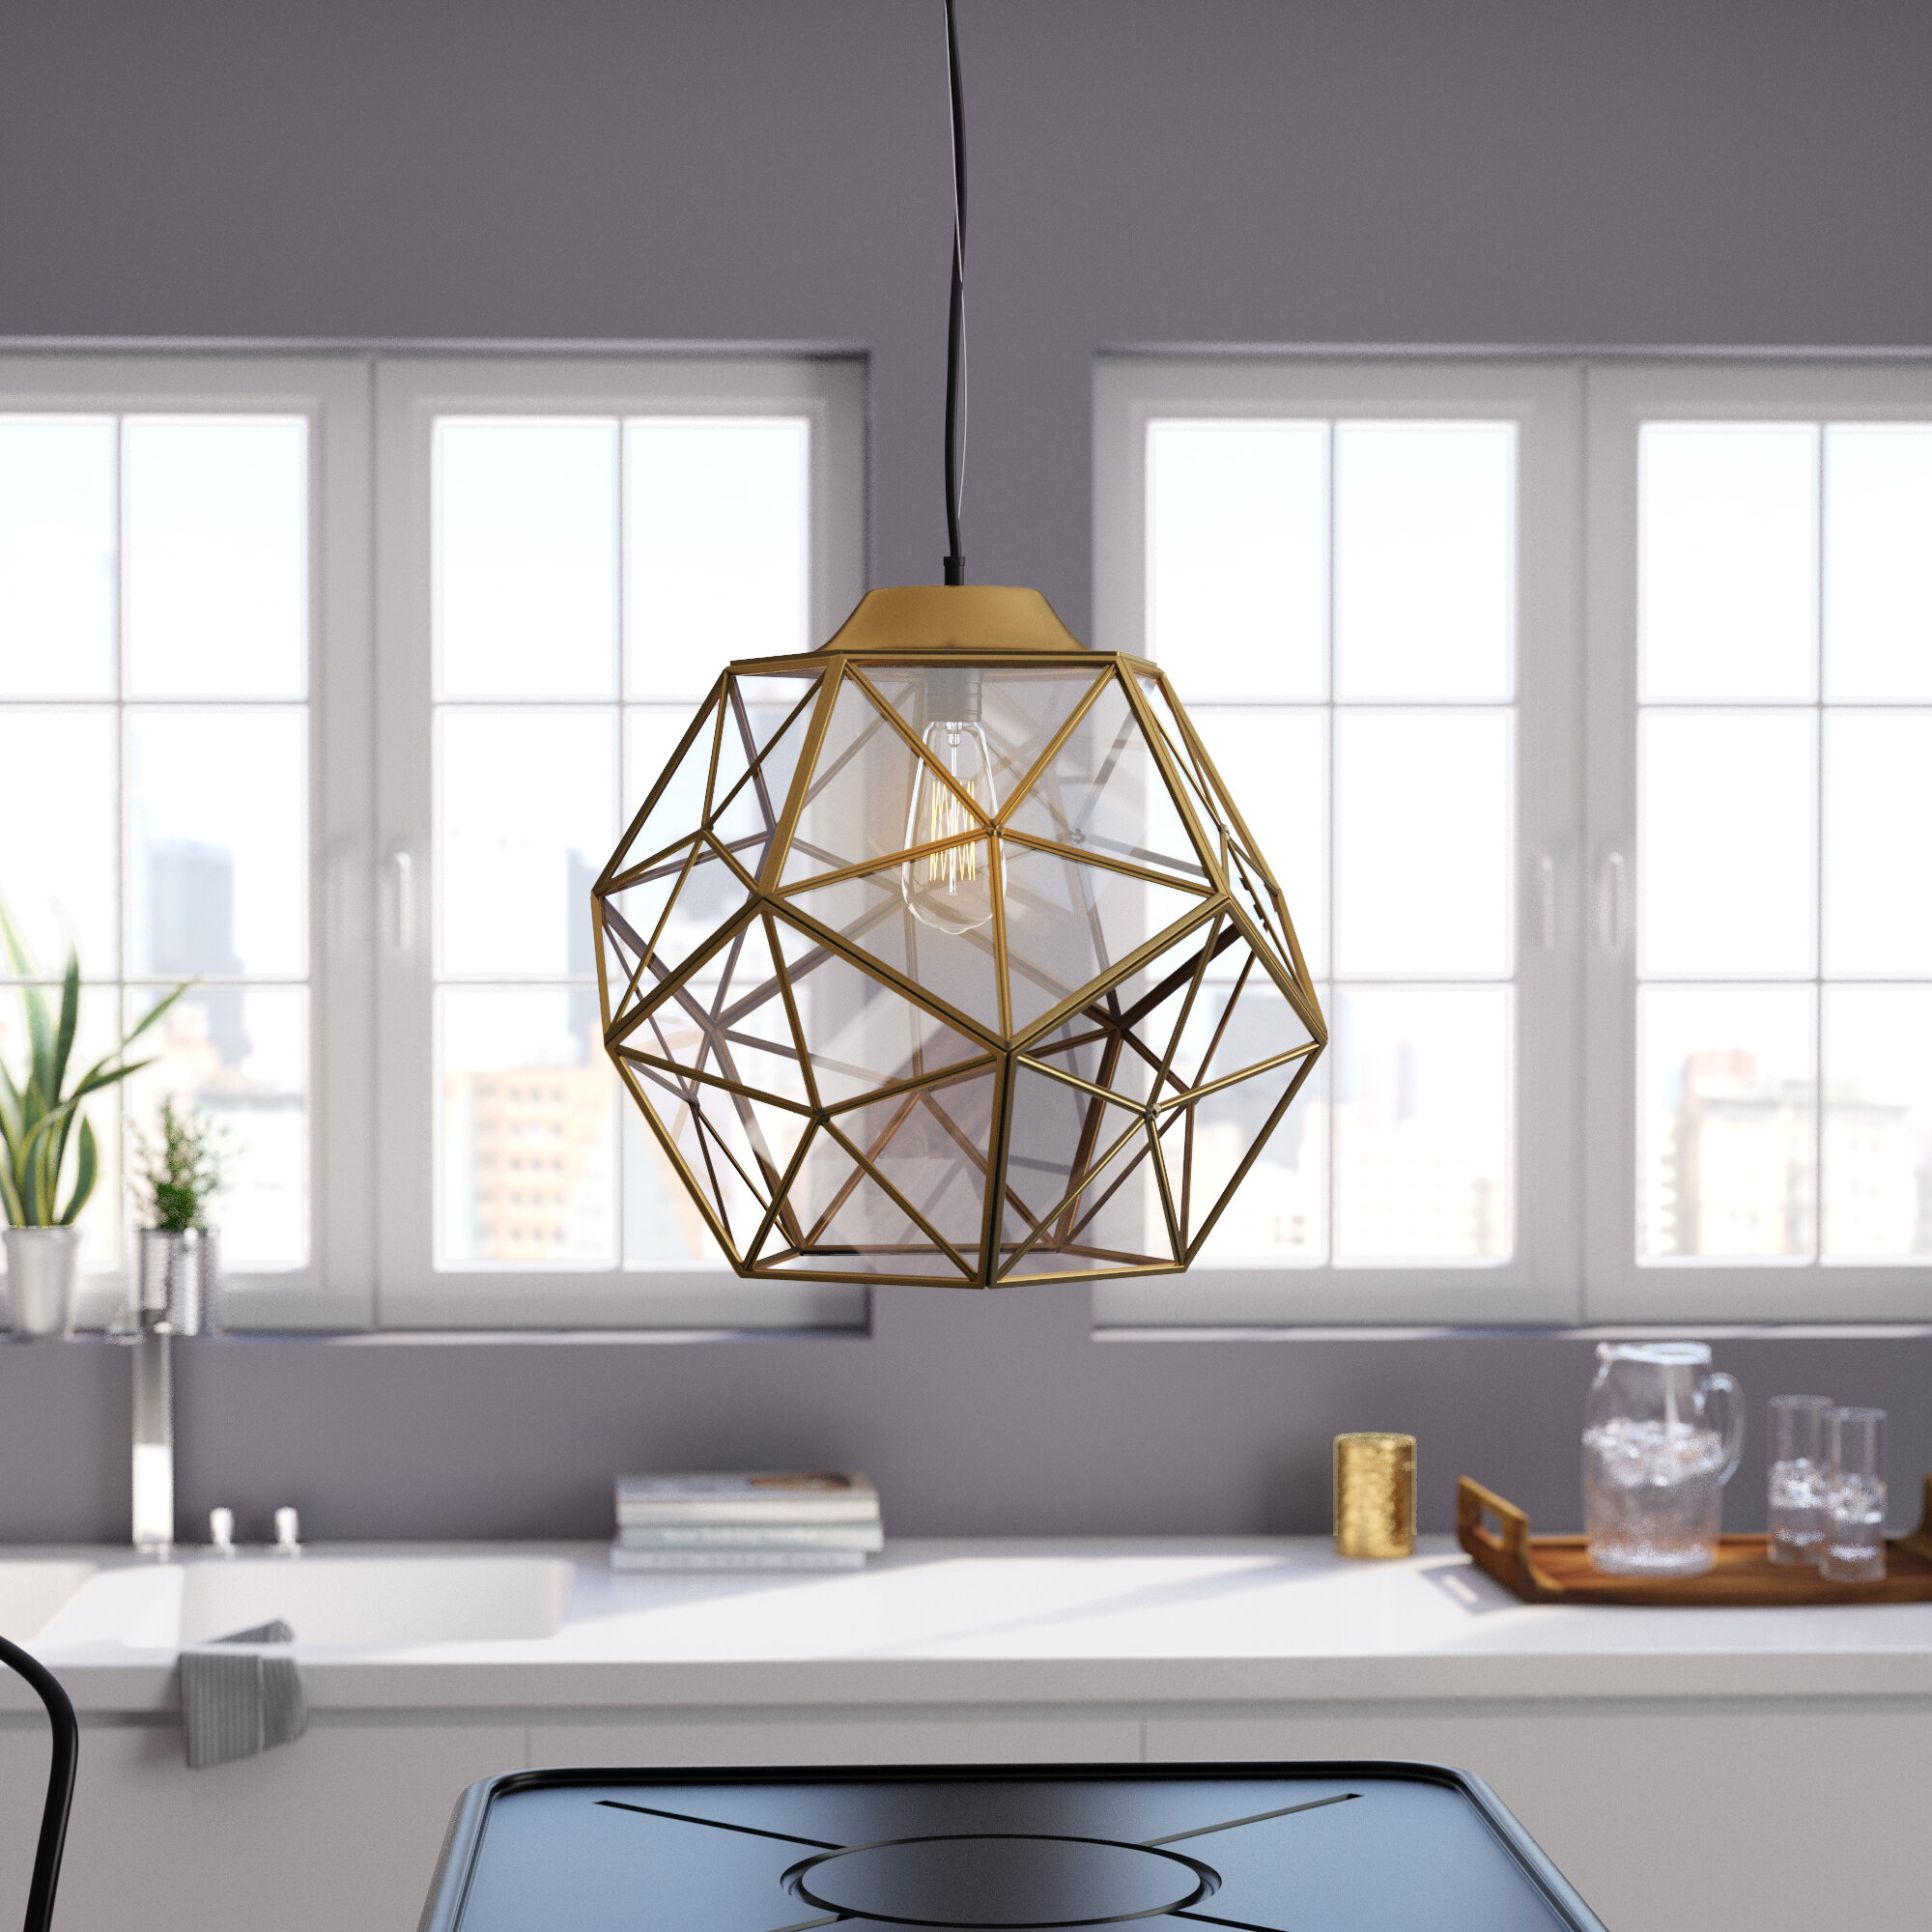 Brayden Studio Edelman 1 Light Single Geometric Pendant Reviews Wayfair Ca